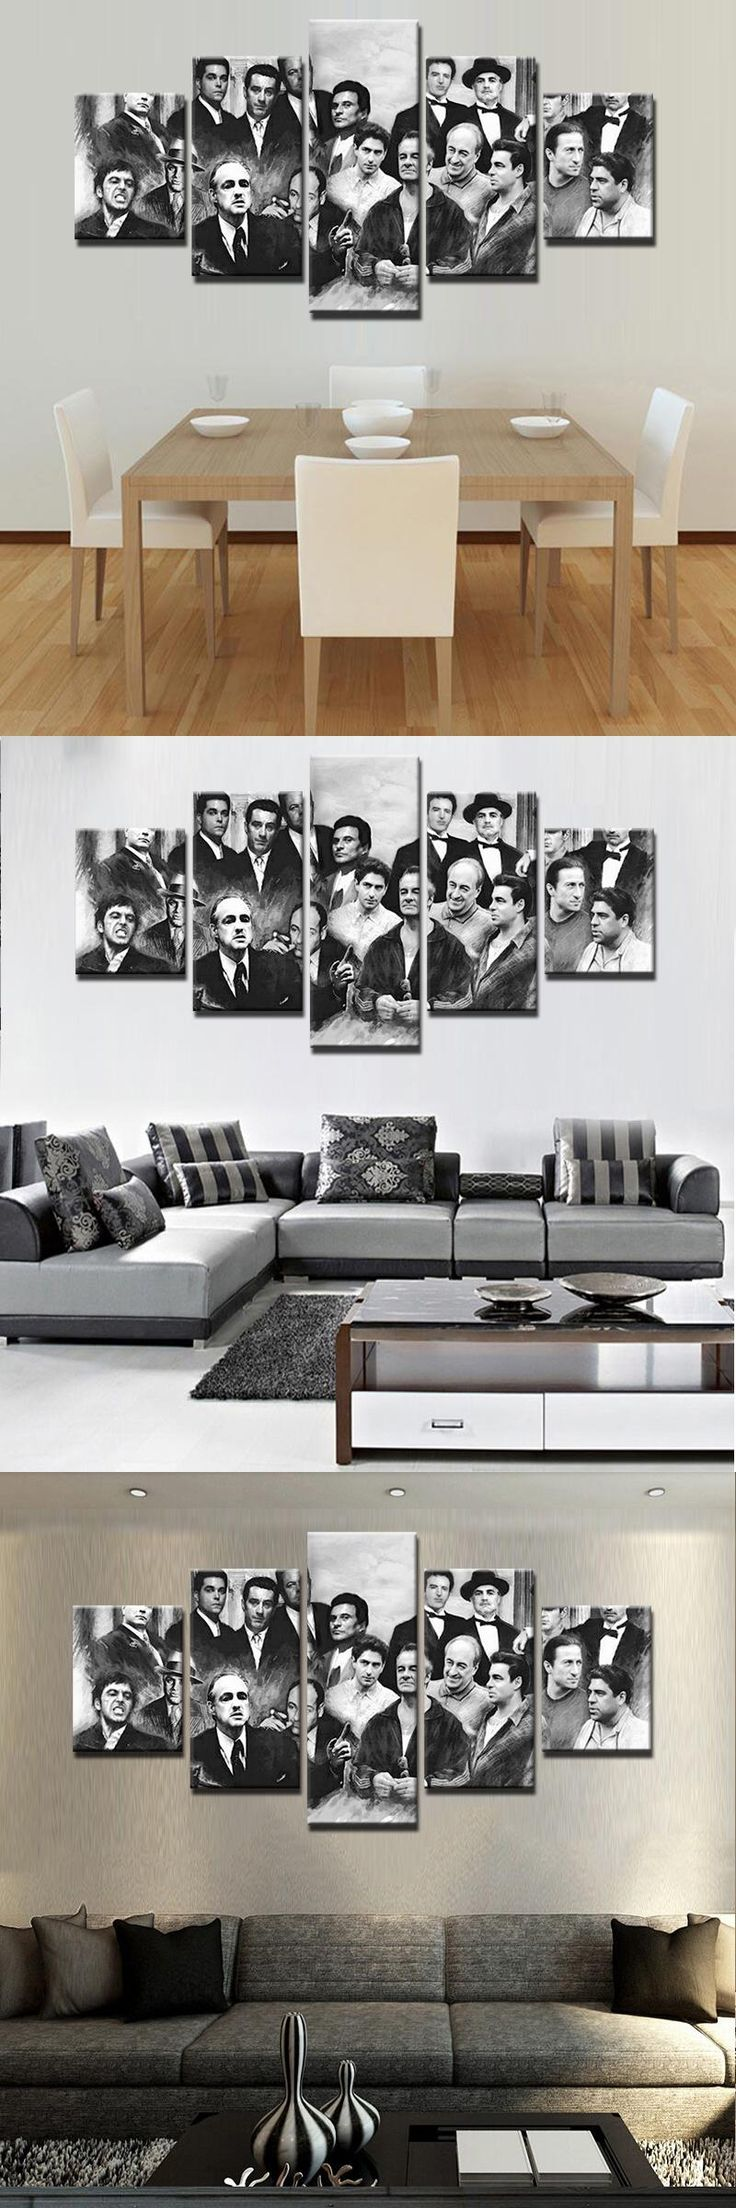 Movie Poster Room Deco Painting On Canvas Modern Home Prints Liveing Room Deco 5 Pieces Top Fashion Wall Art Decorate Poster